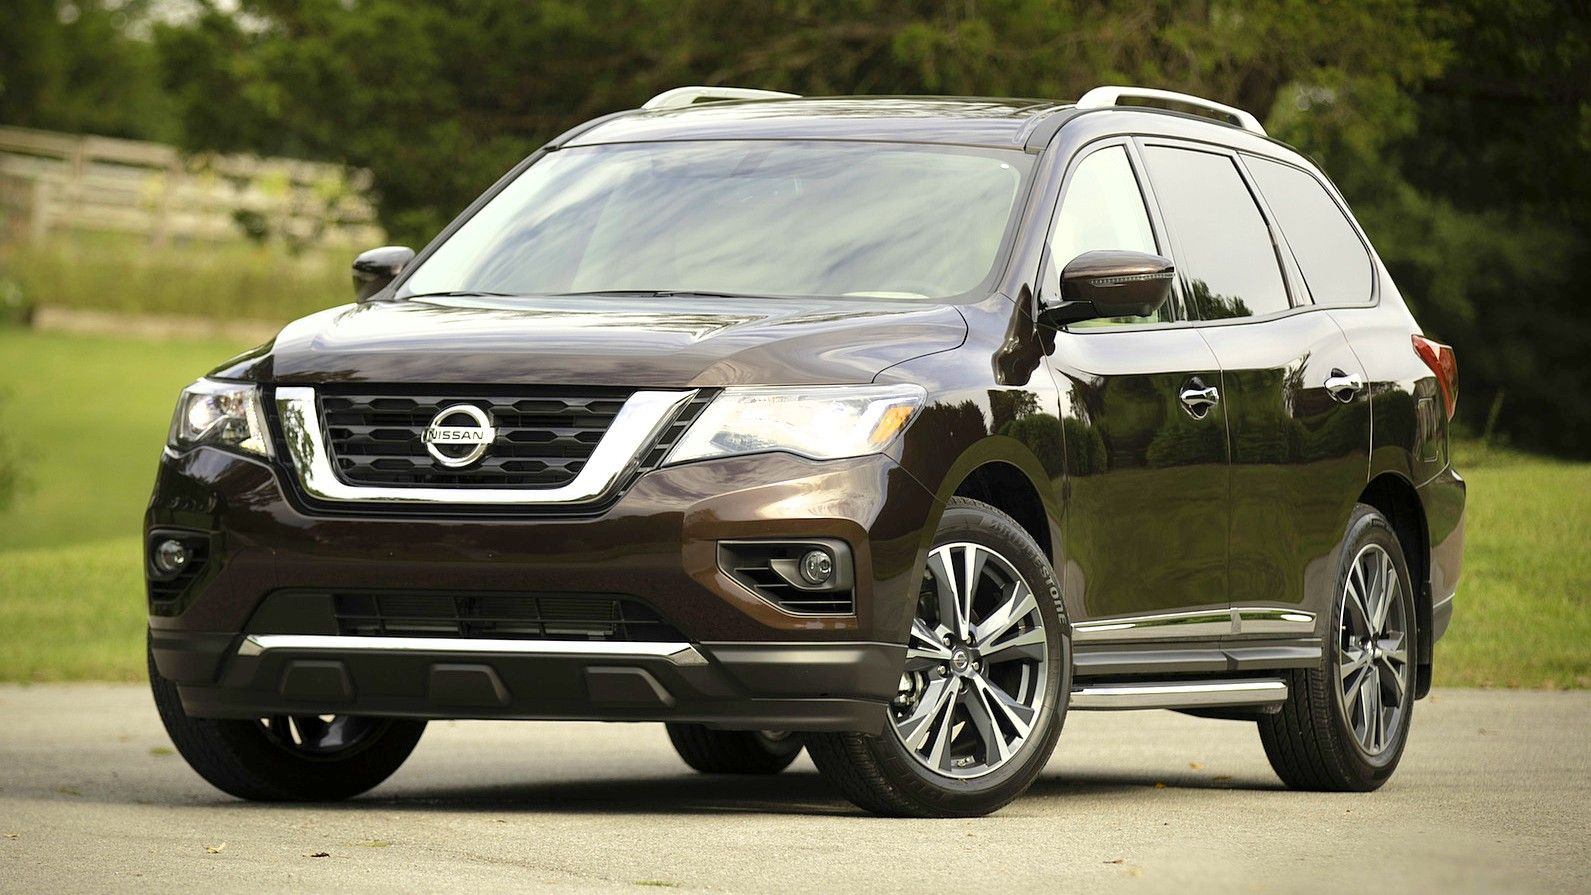 2020 Nissan Pathfinder front three quarters brown